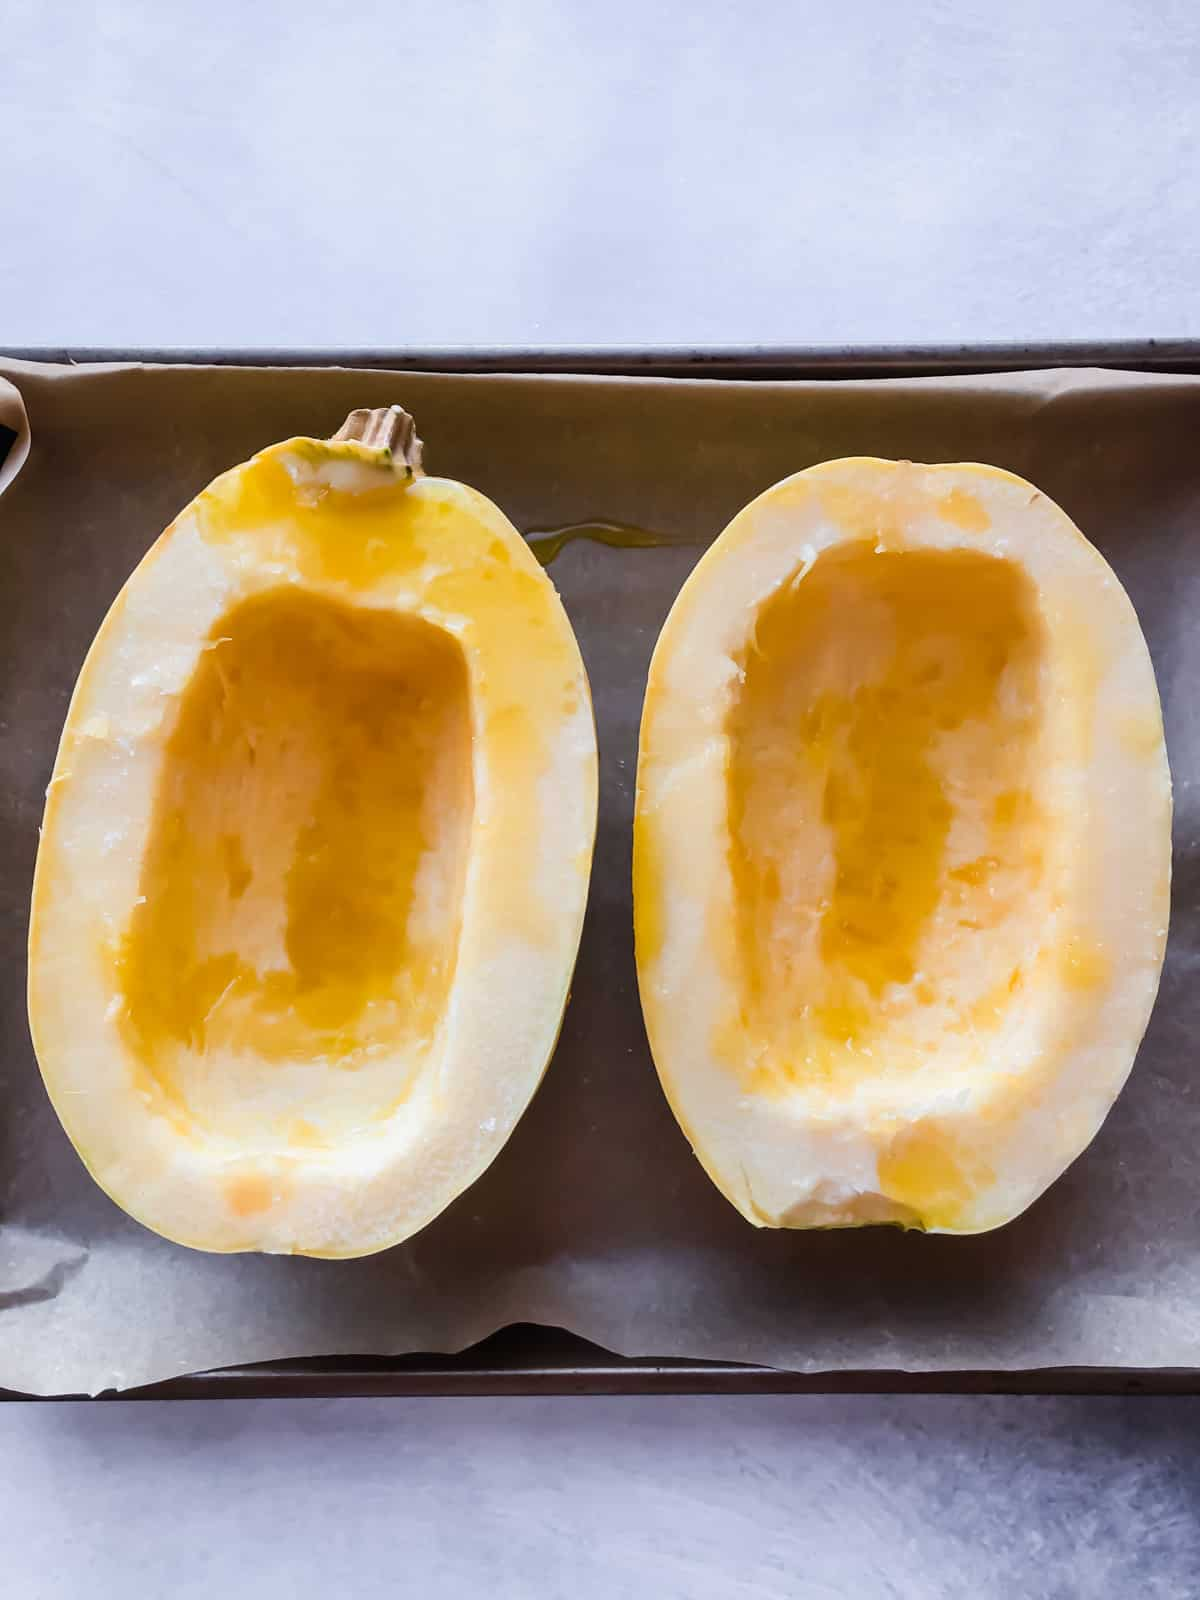 spaghetti squash halves on parchment paper on a grey surface